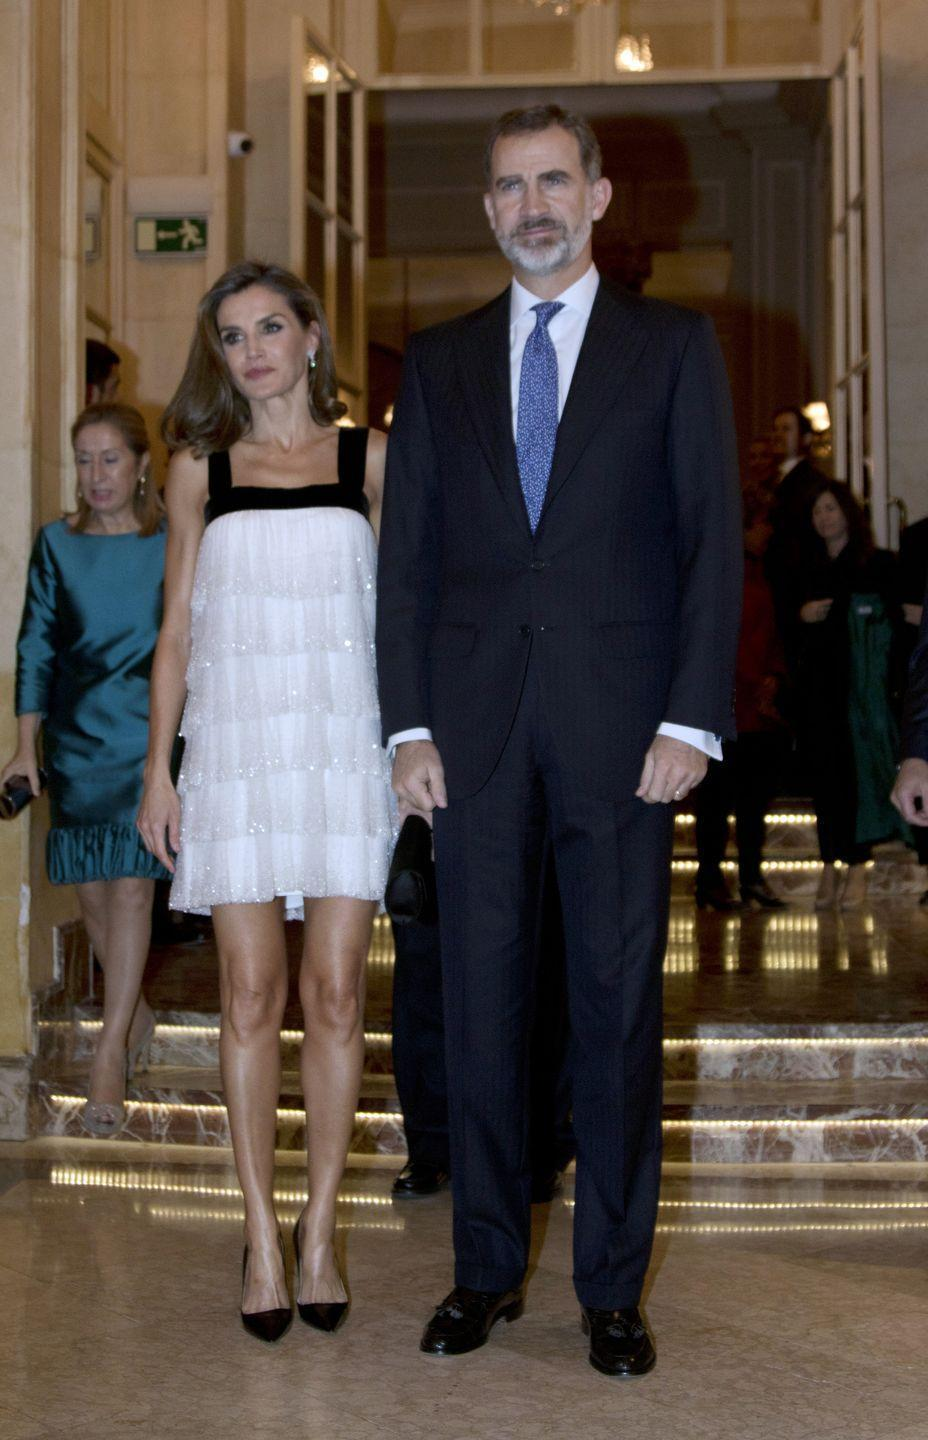 <p>King Felipe and Queen Letizia attended the Francisco Cerecedo Journalism award ceremony in Madrid. Letizia wore a flapper-inspired dress by Teresa Helbig for the occasion.</p>